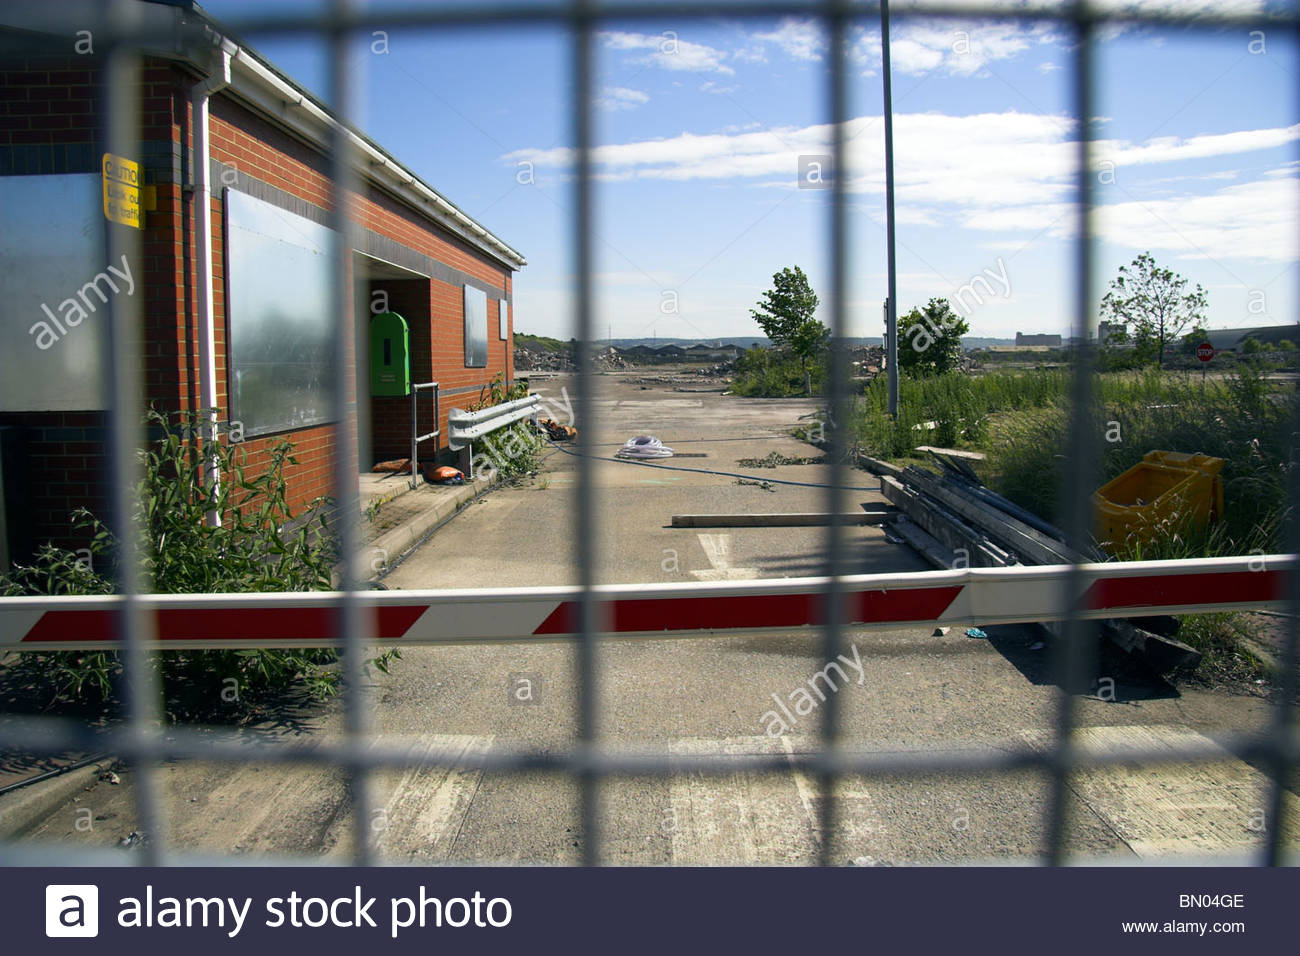 Securtity gate to the now derelict and demolished former Rhodia chemical plant in Avonmouth, Bristol, UK. - Stock Image